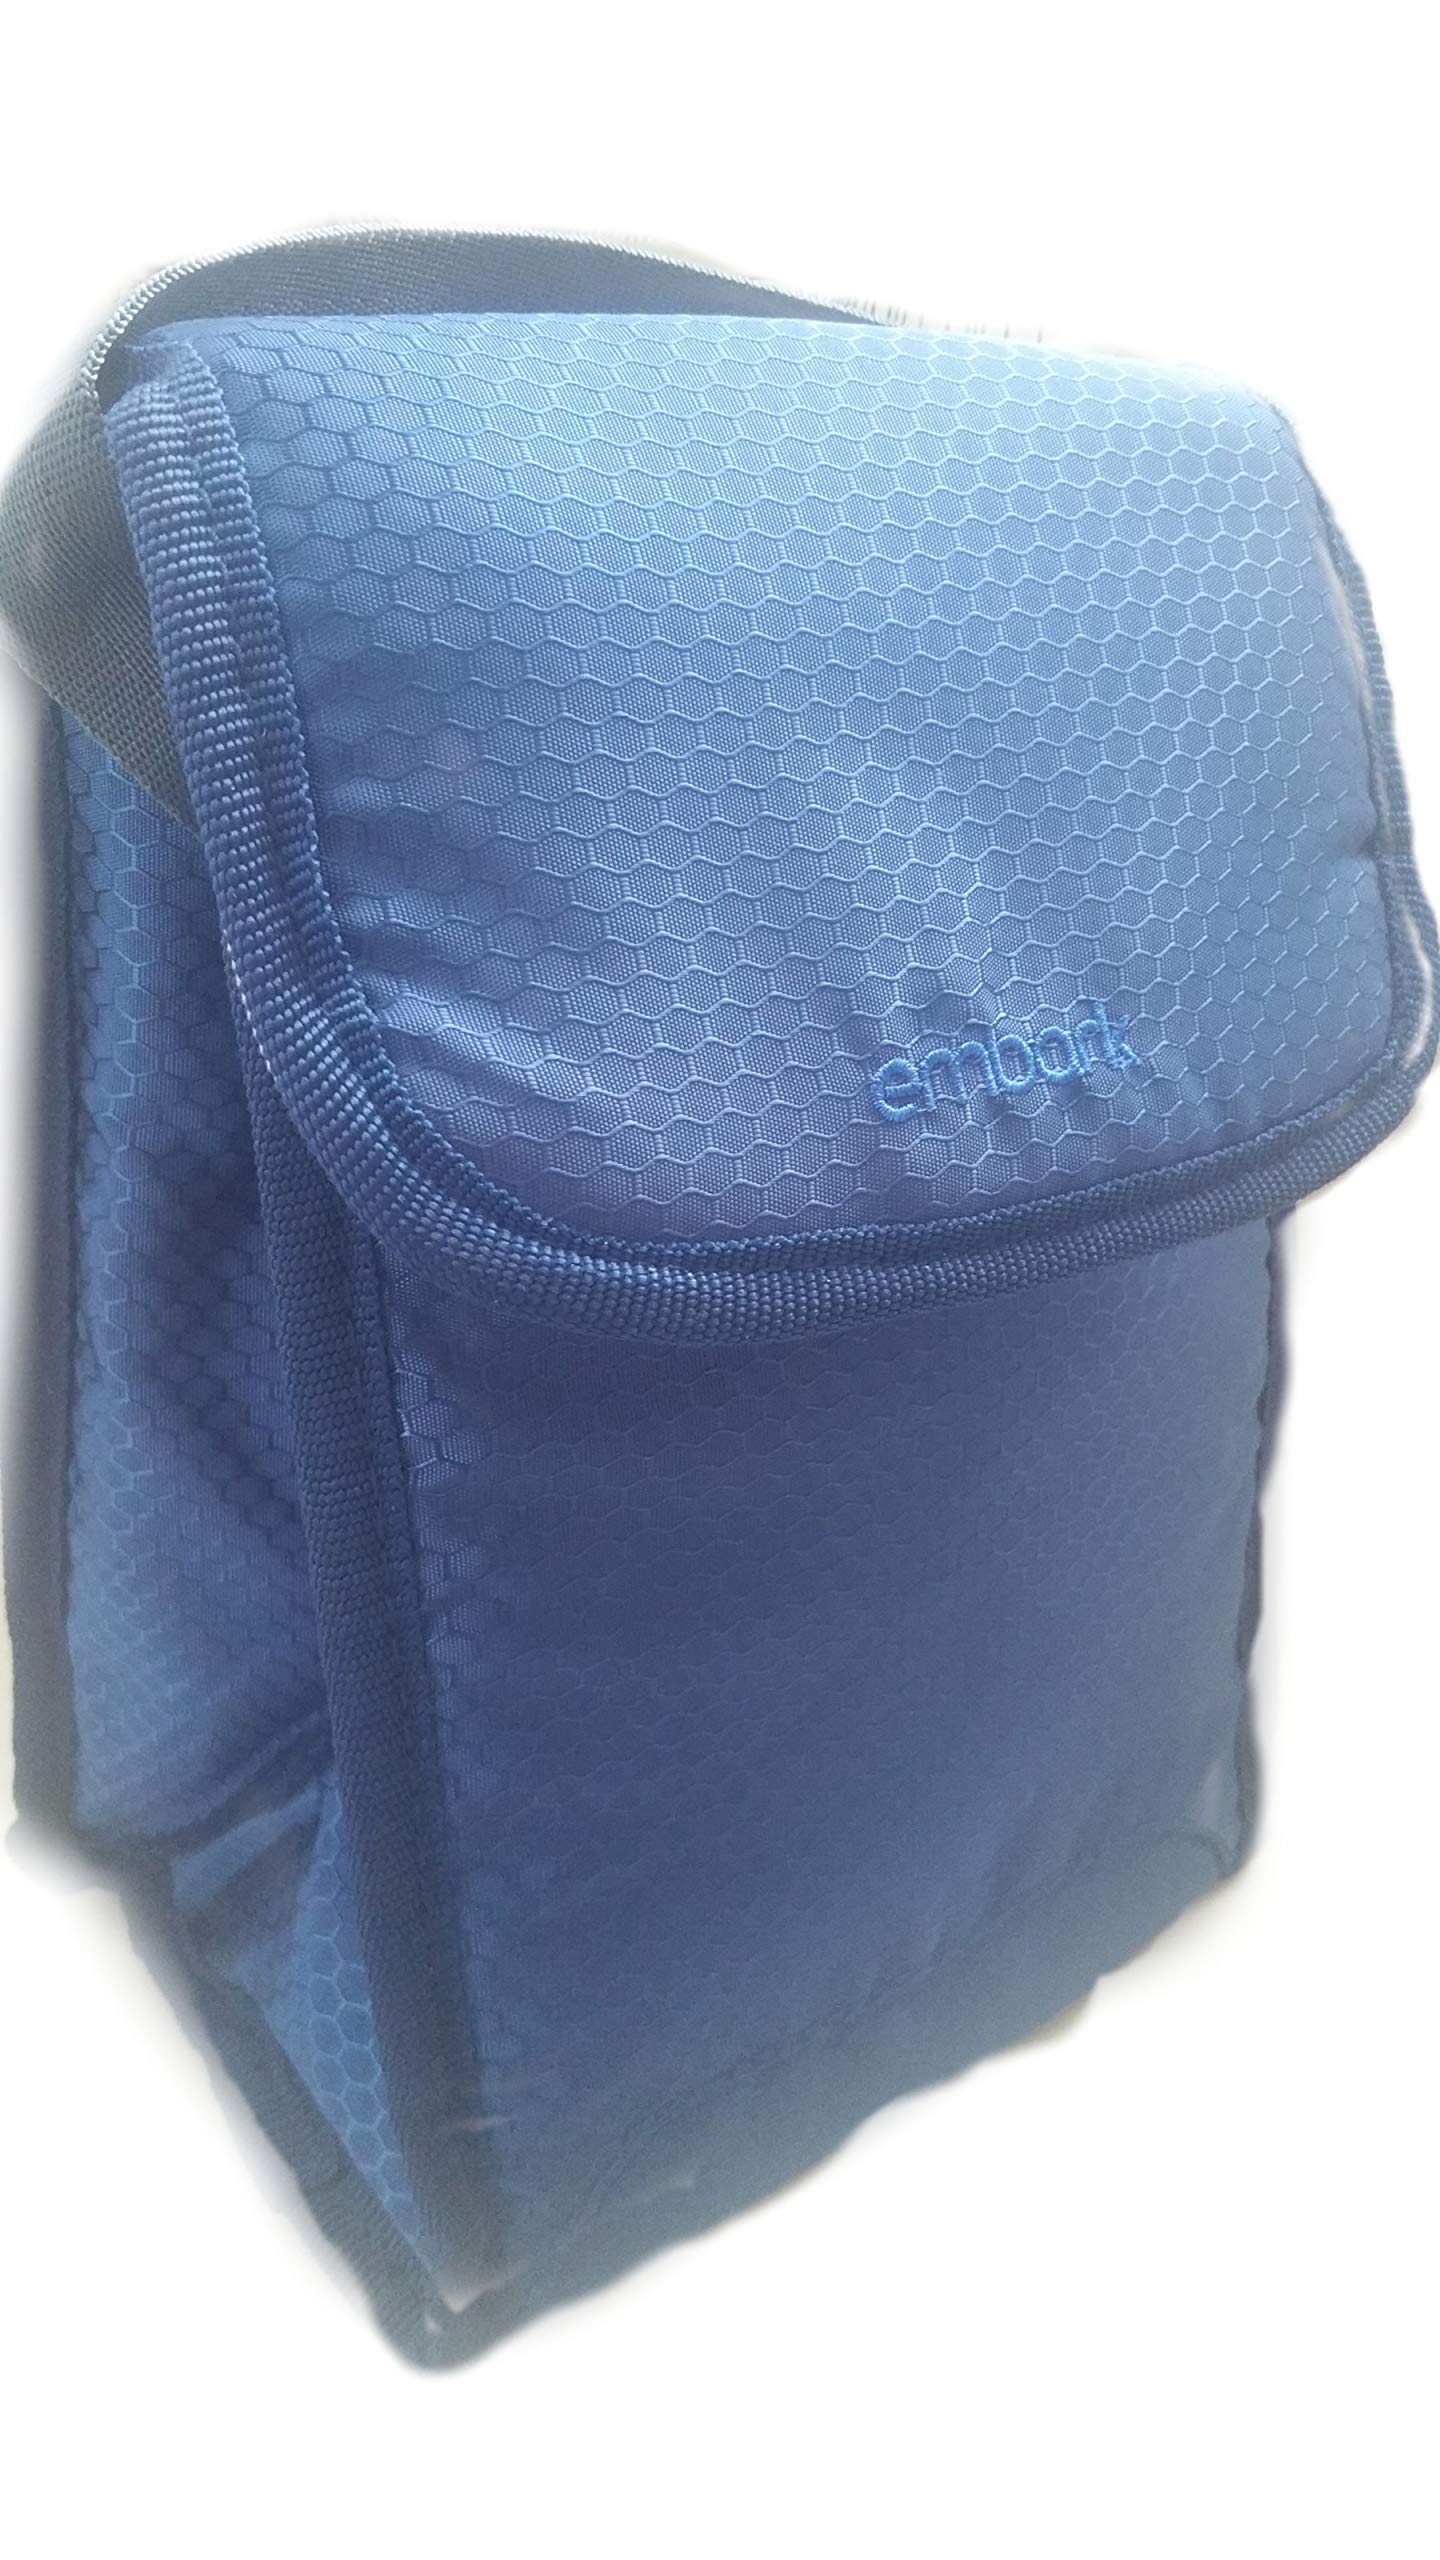 Embark Insulated Lunch Bag (Blue)